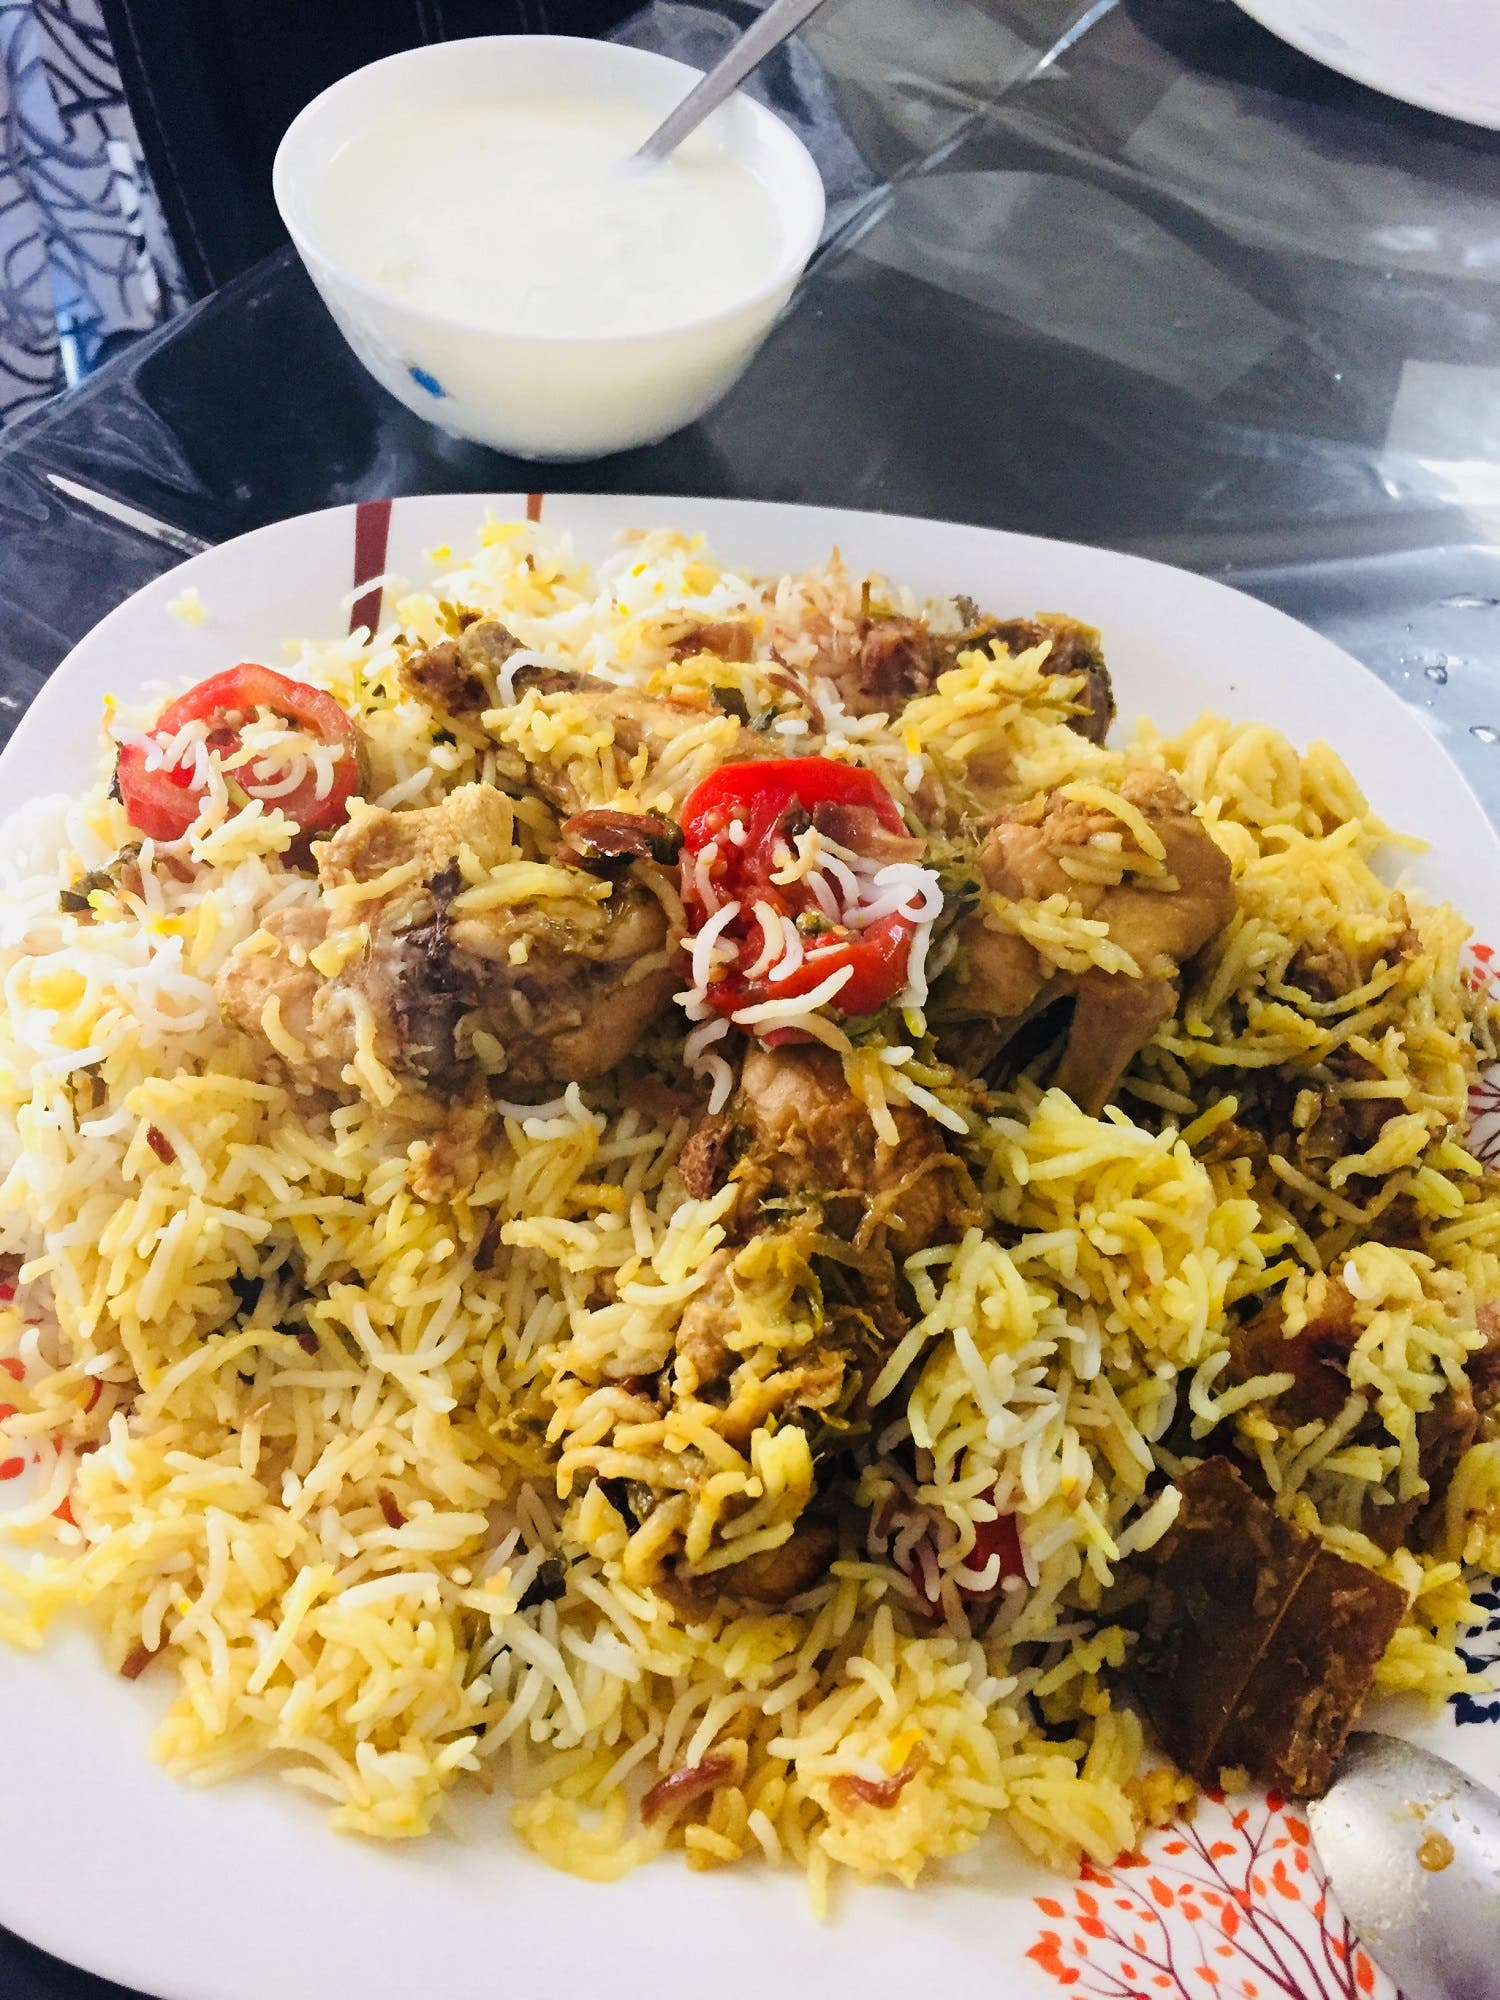 This is a distinct biryani from a town called Bhatkal in coastal Karnataka known for the Navayath community, which traces their origin to the Arabs. (Supplied)